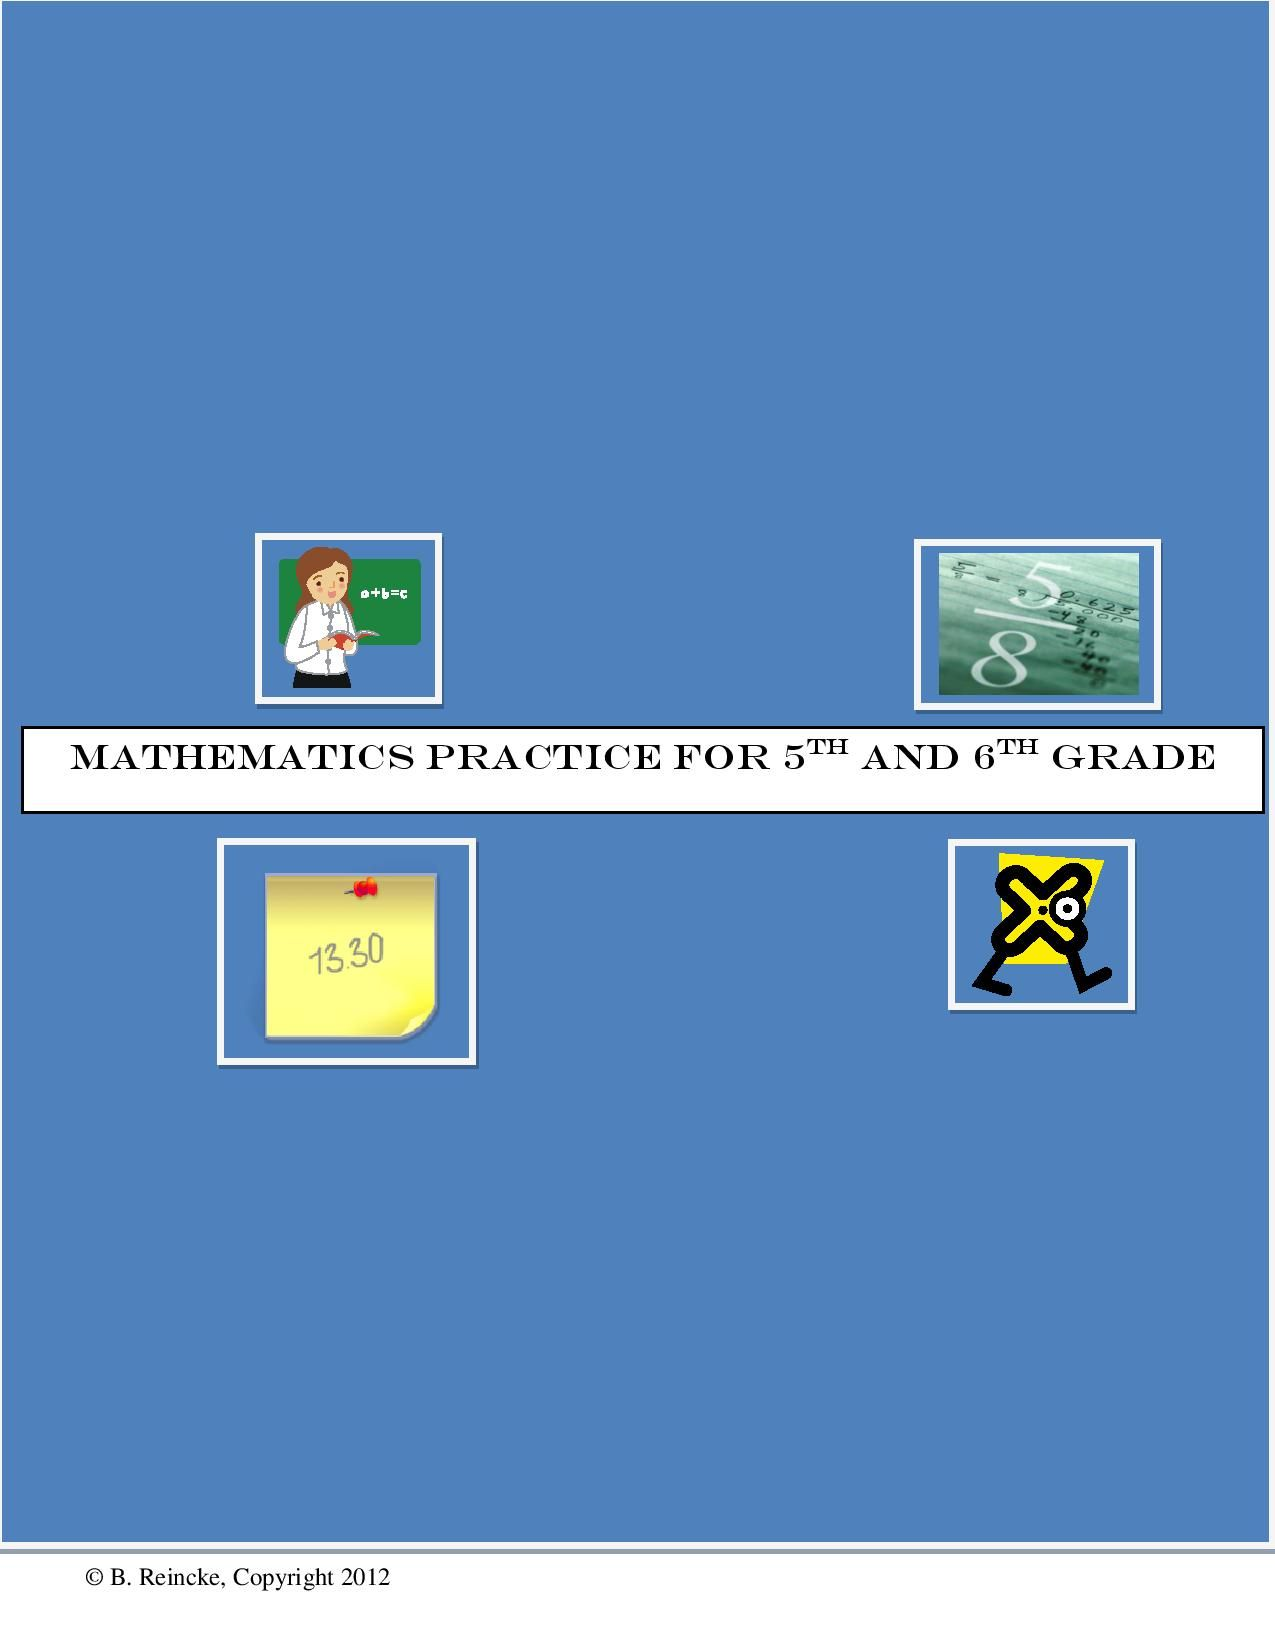 112 Math Worksheets for 5th or 6th Grade (Decimals, Fractions, etc ...